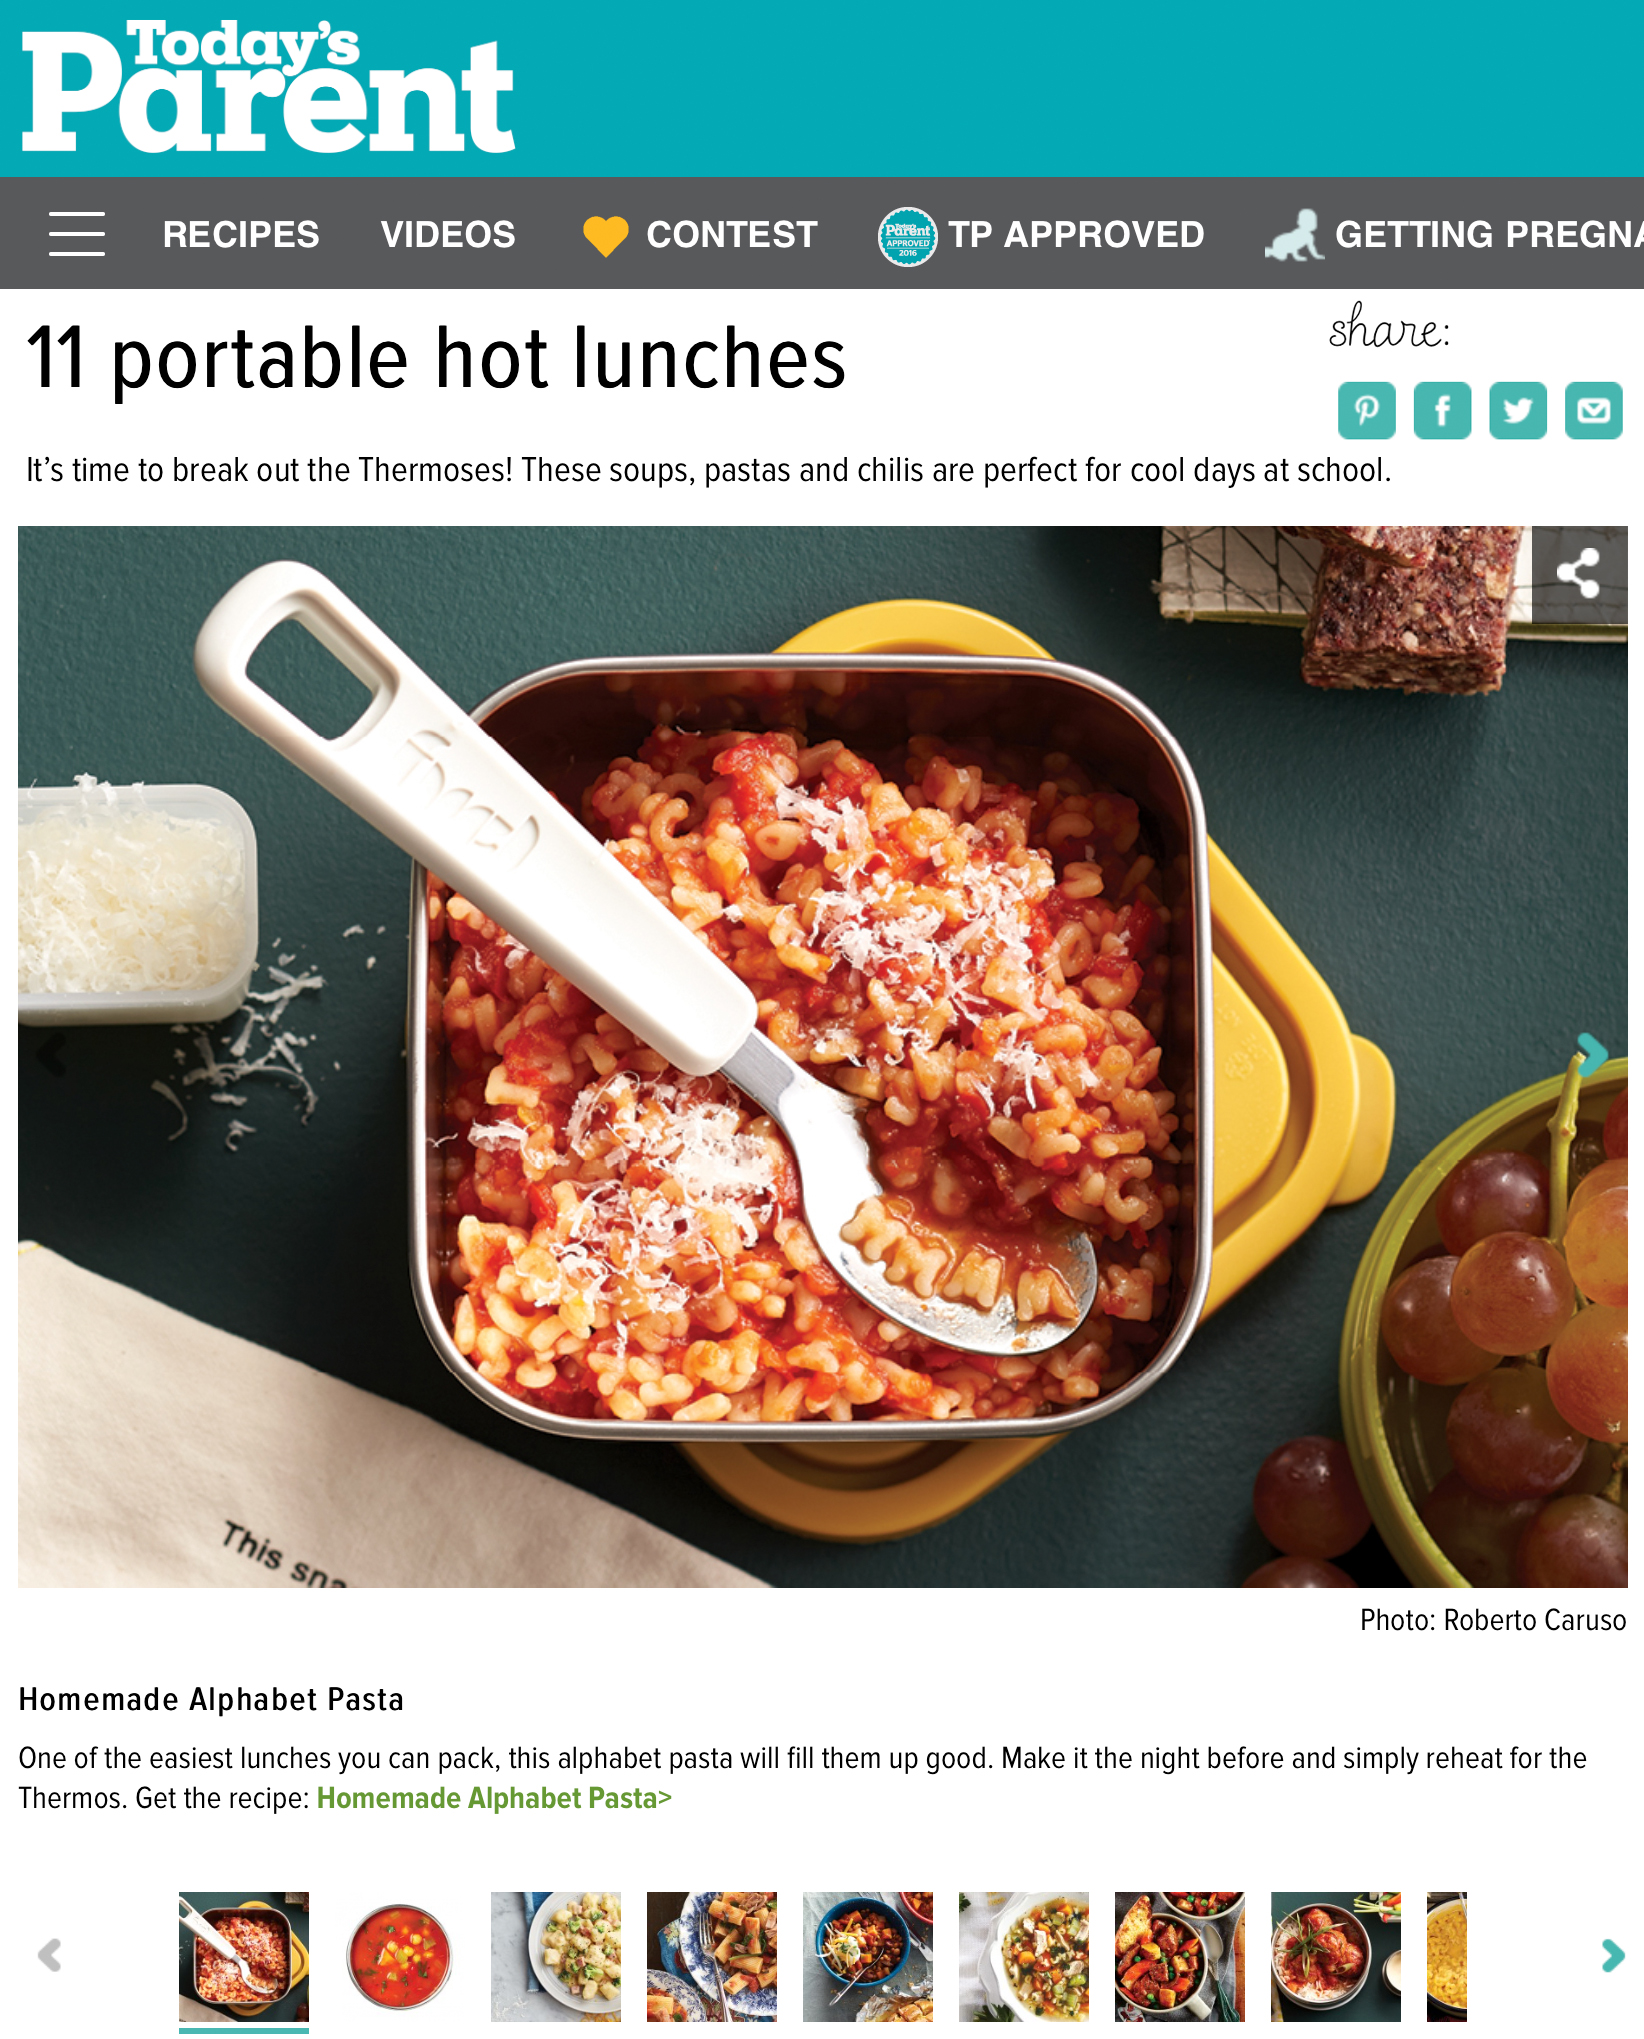 U konserve company press releases media mentions your food to go take out birthmarkmag 5 clever lunch boxes and containers realsimple the greening of lunch entrepreneur forumfinder Gallery